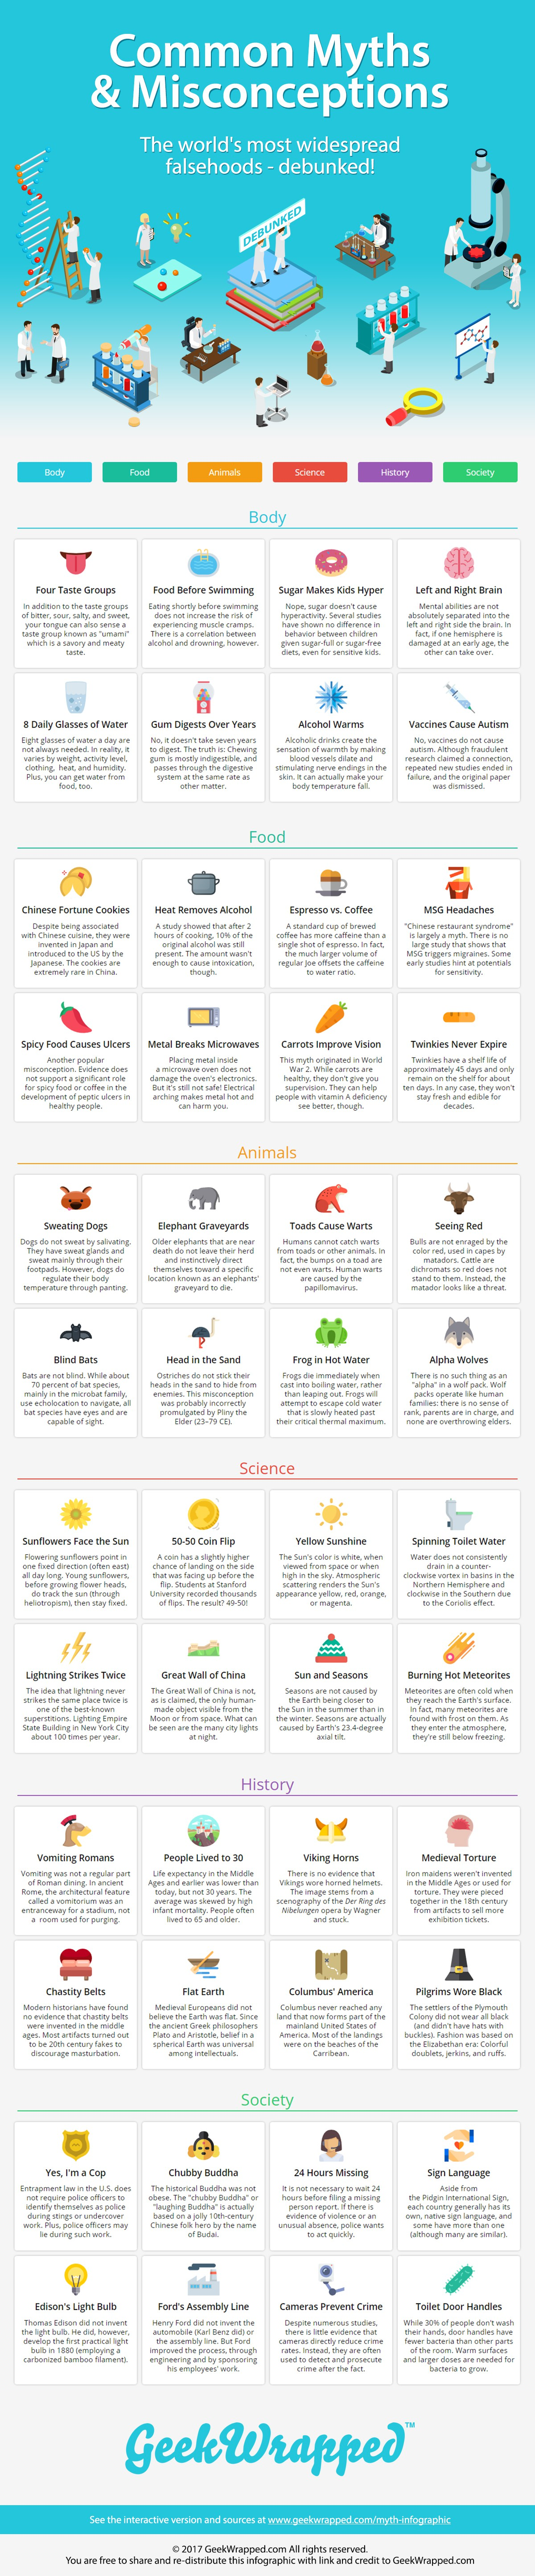 100 Common Myths Amp Misconceptions Infographic